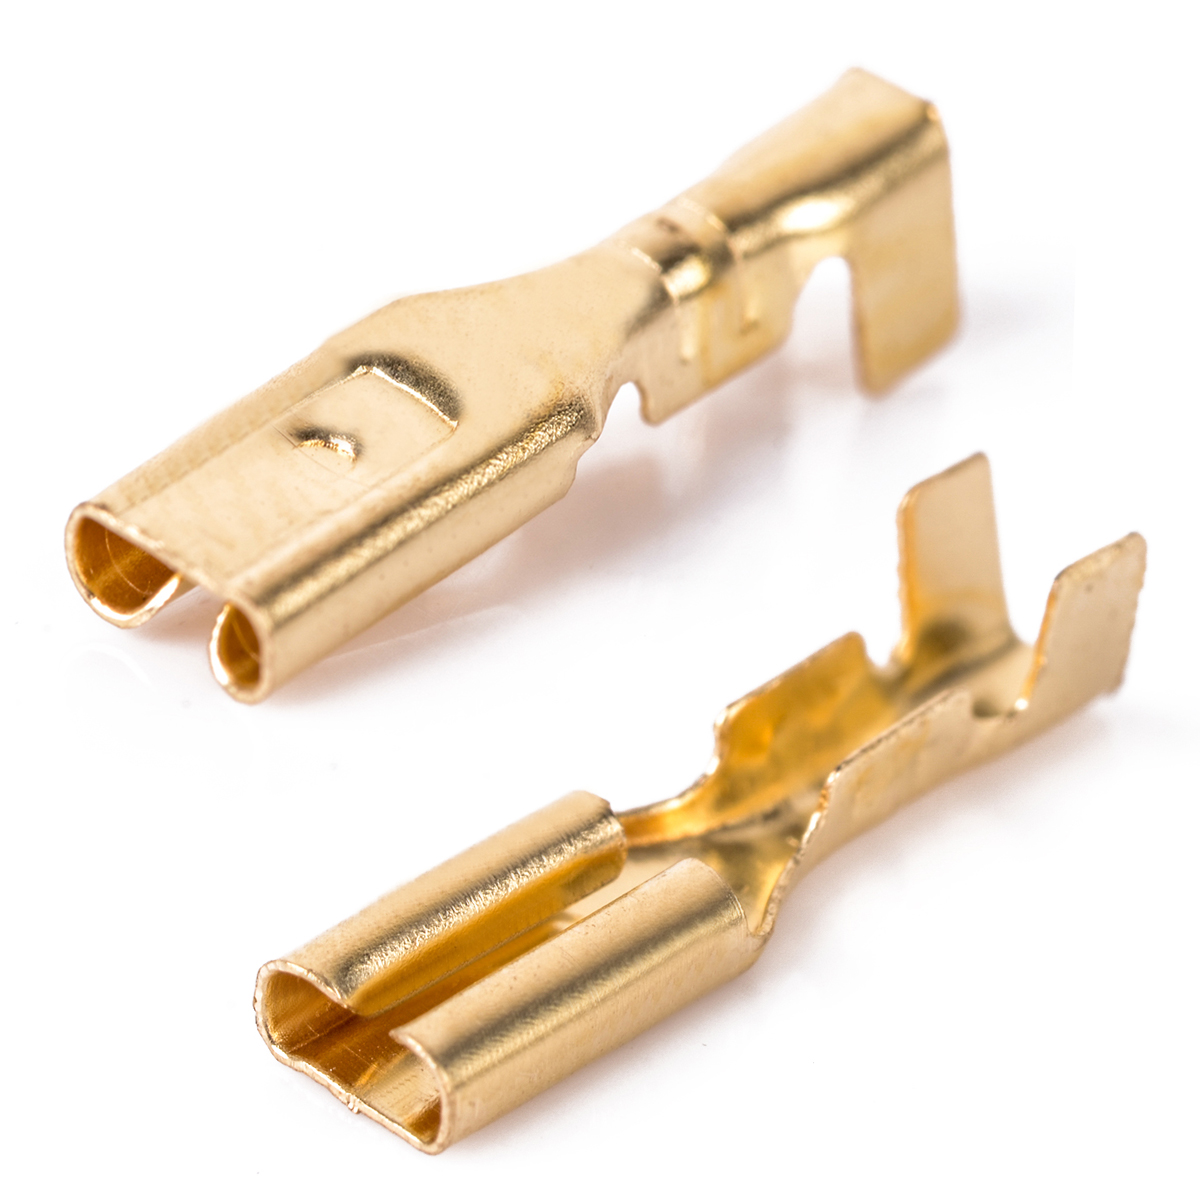 100pcs Practical 2.8mm Brass Crimp Terminal Female Spade Connectors with Plastic Insulating Sleeve сумка kate spade new york wkru2816 kate spade hanna